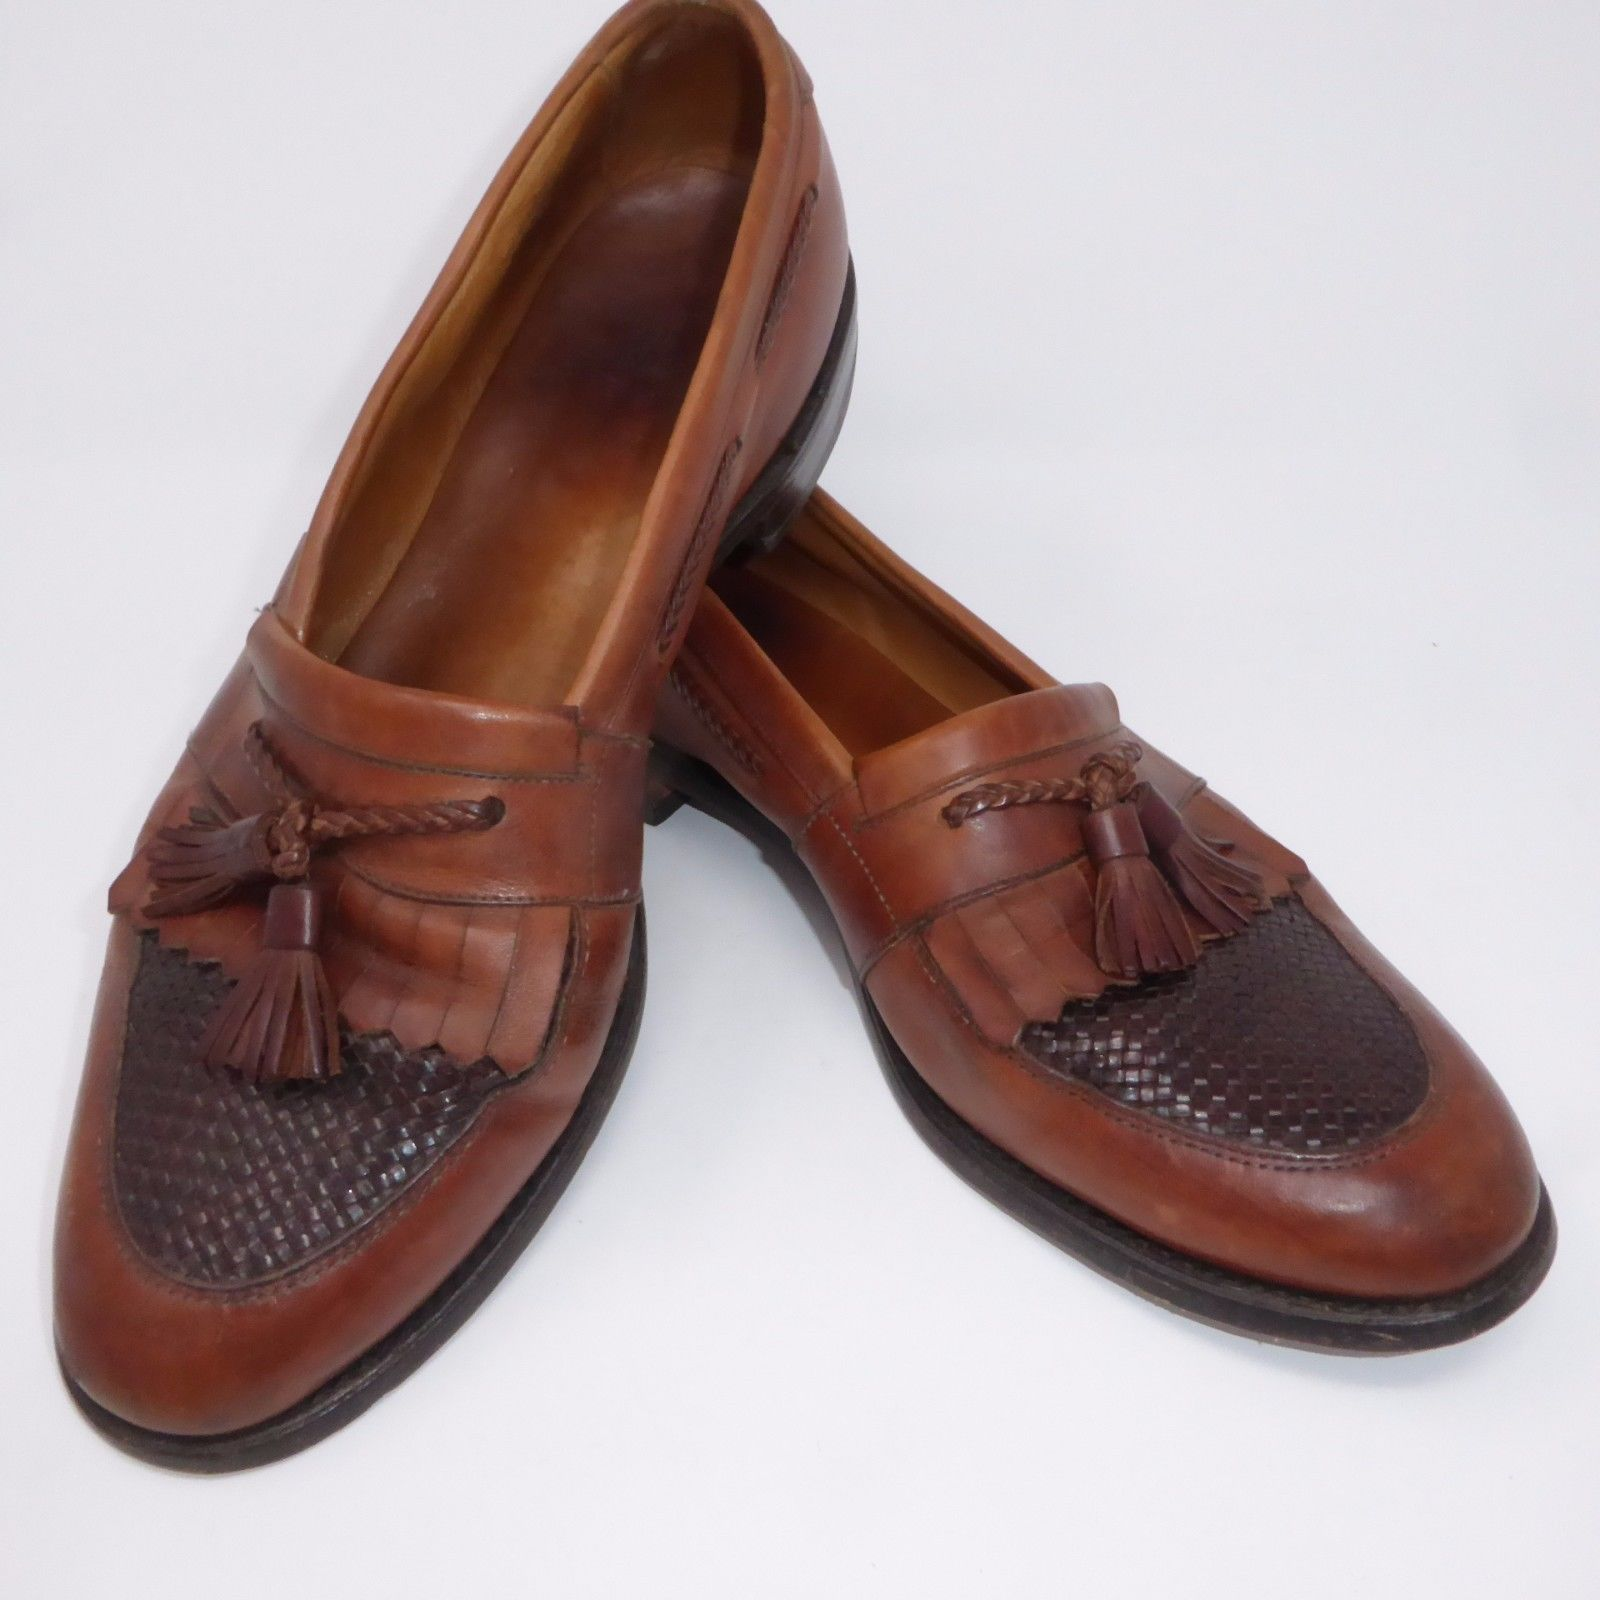 1888596e2cd Vintage Allen Edmonds Cody Brown Leather and 50 similar items. 57